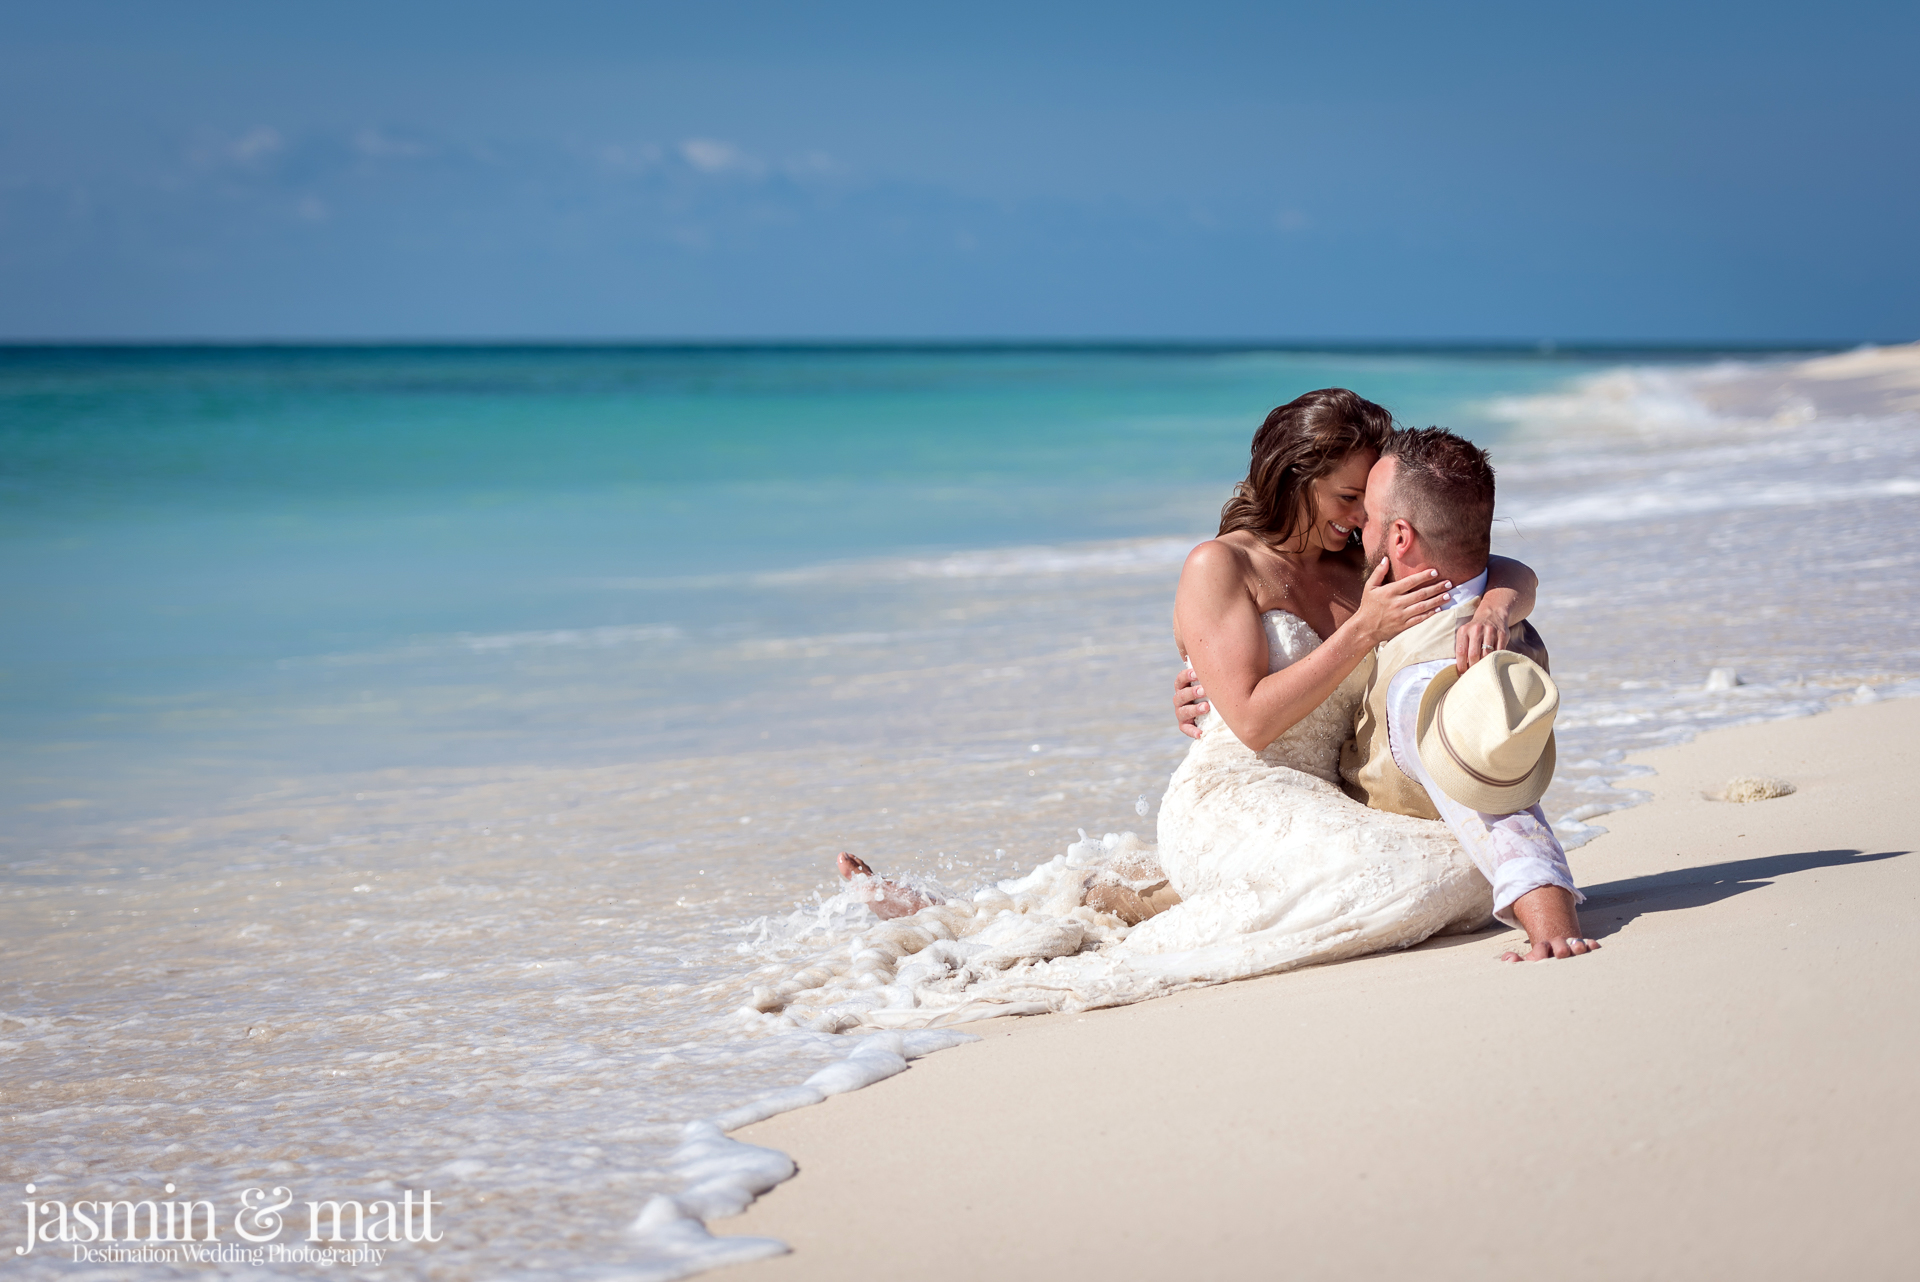 Ashleigh Brandon TTD Web 013 - Destination Wedding Photography Packages & Pricing